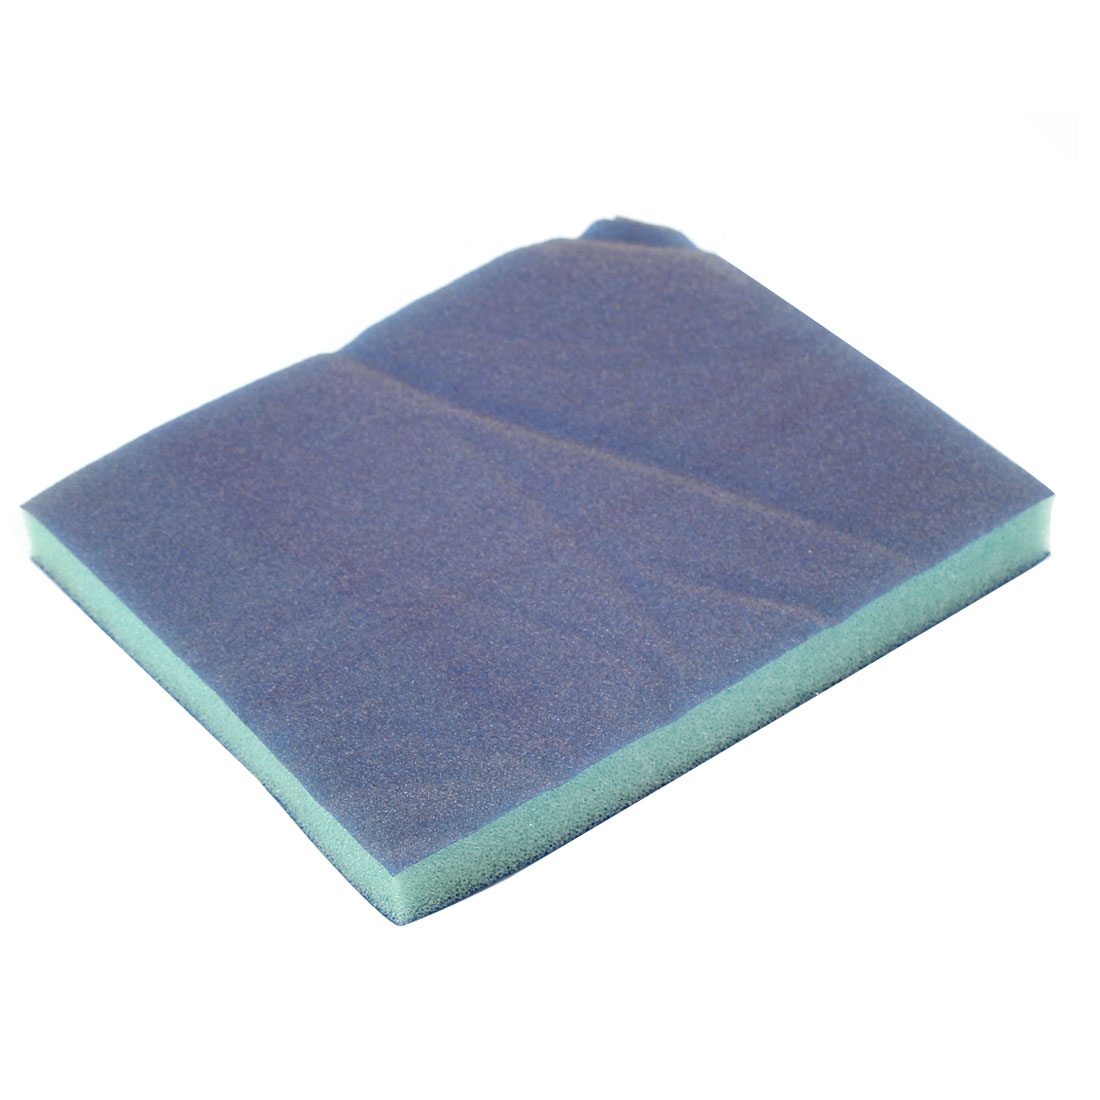 Rectangle Fine Grinding Sanding Sponge Block Blue 120mm x 98mm x 13mm